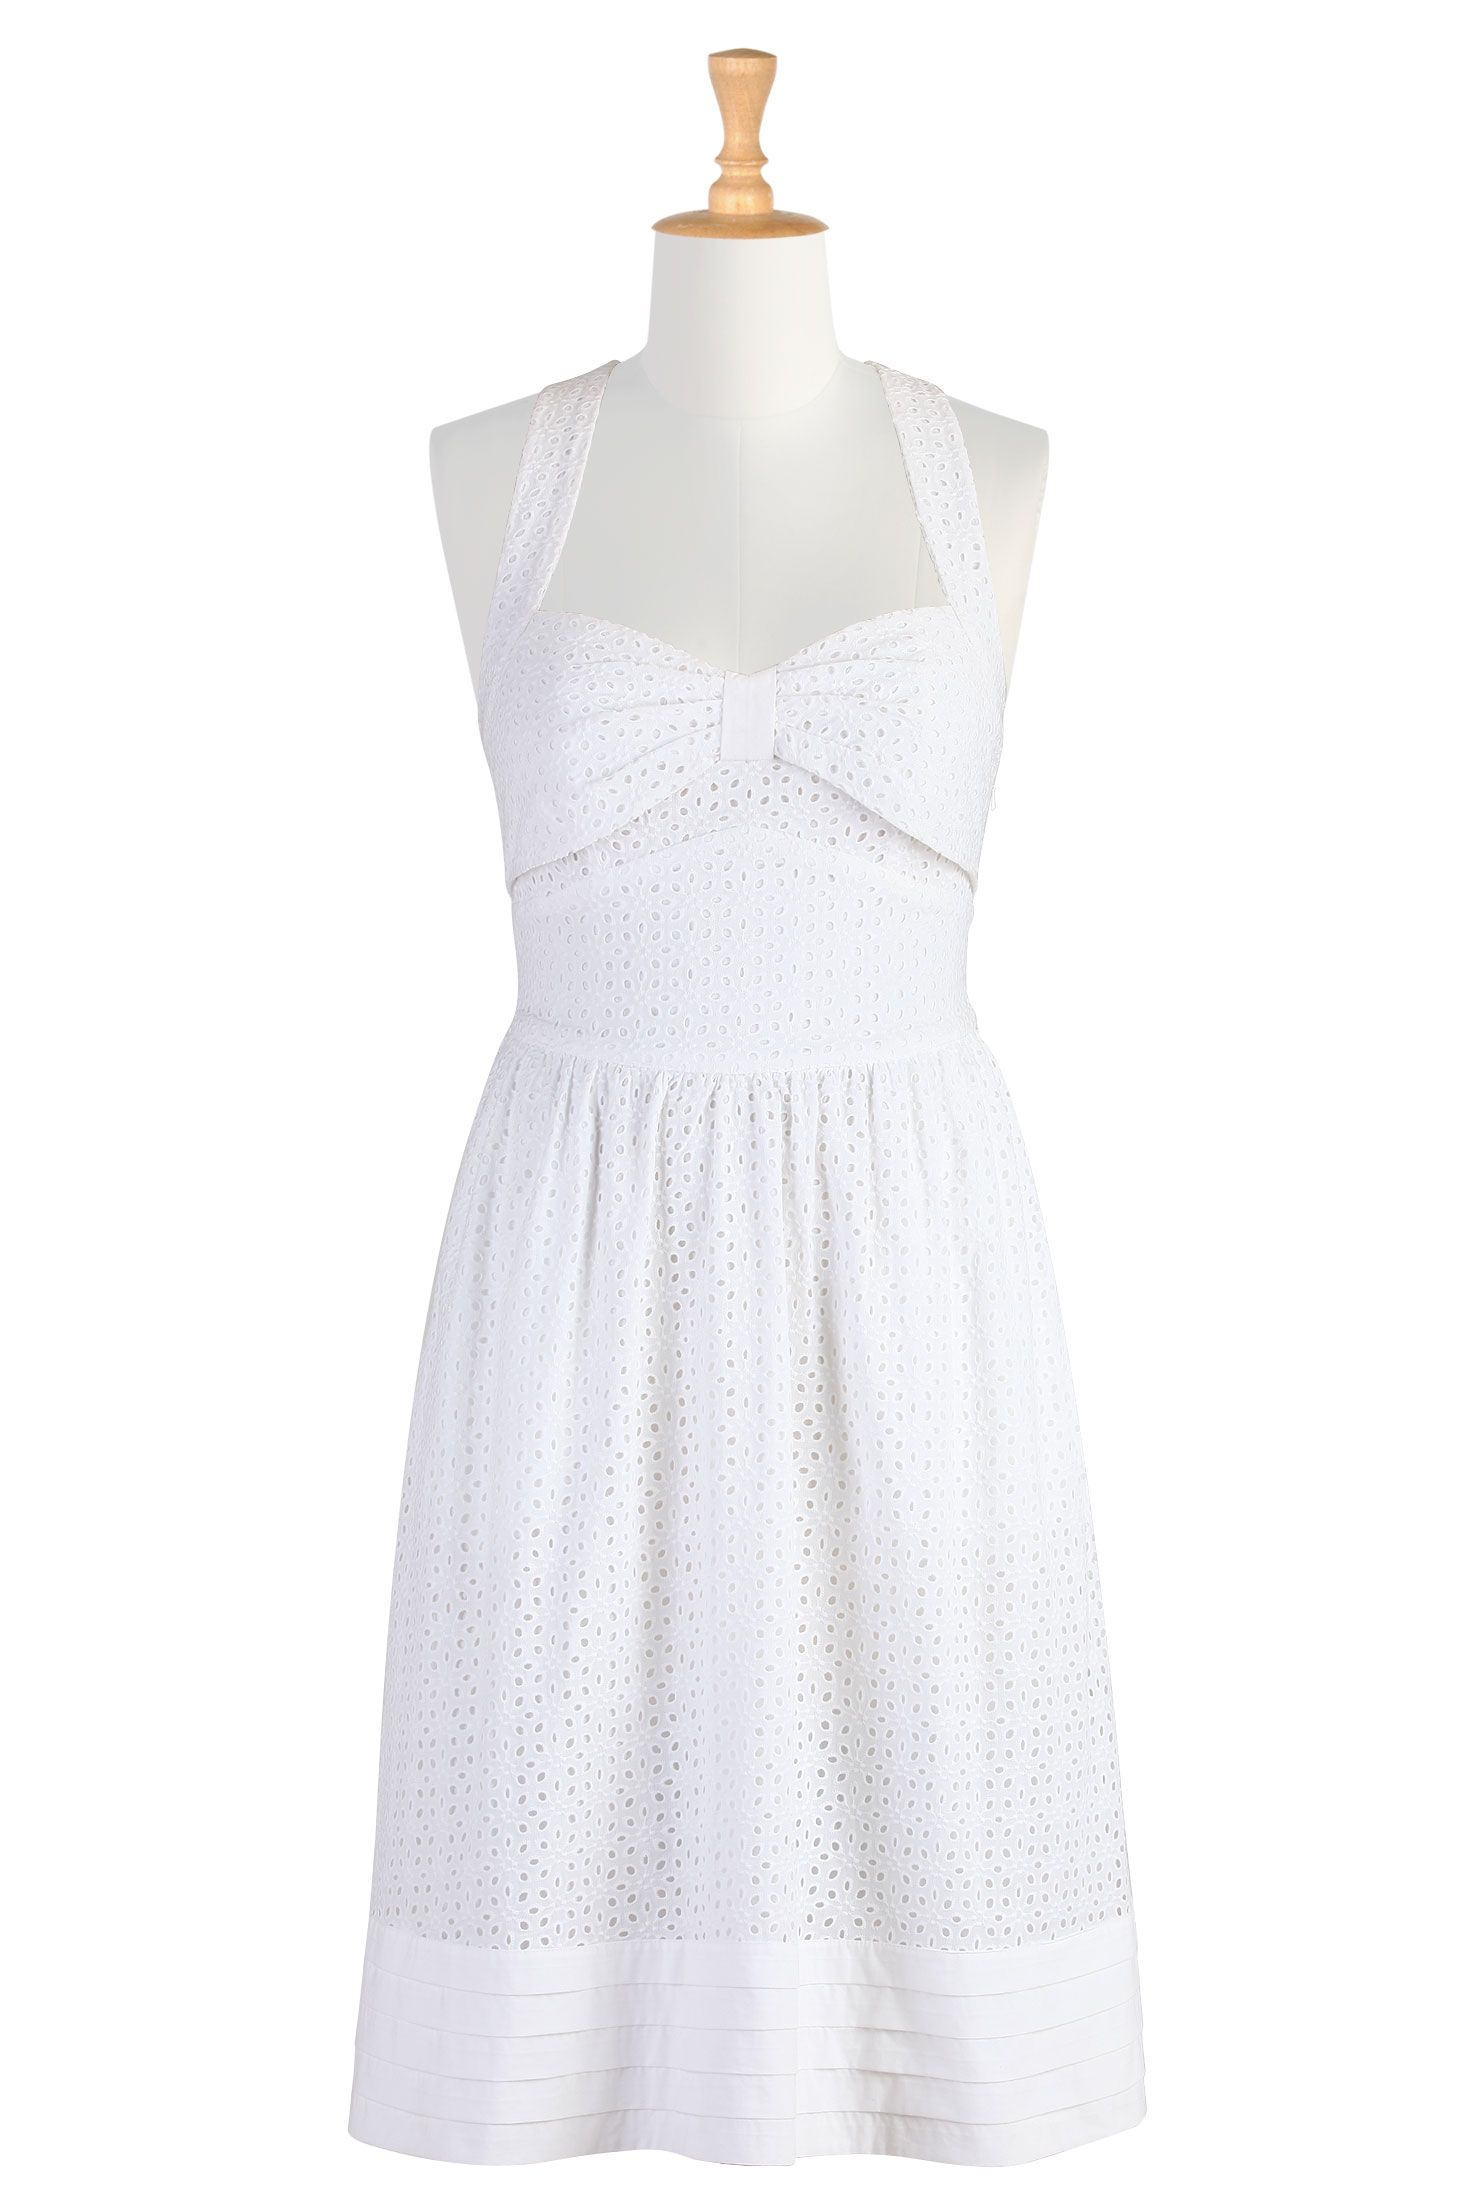 Summer white eyelet sundress white dress summer white sundress